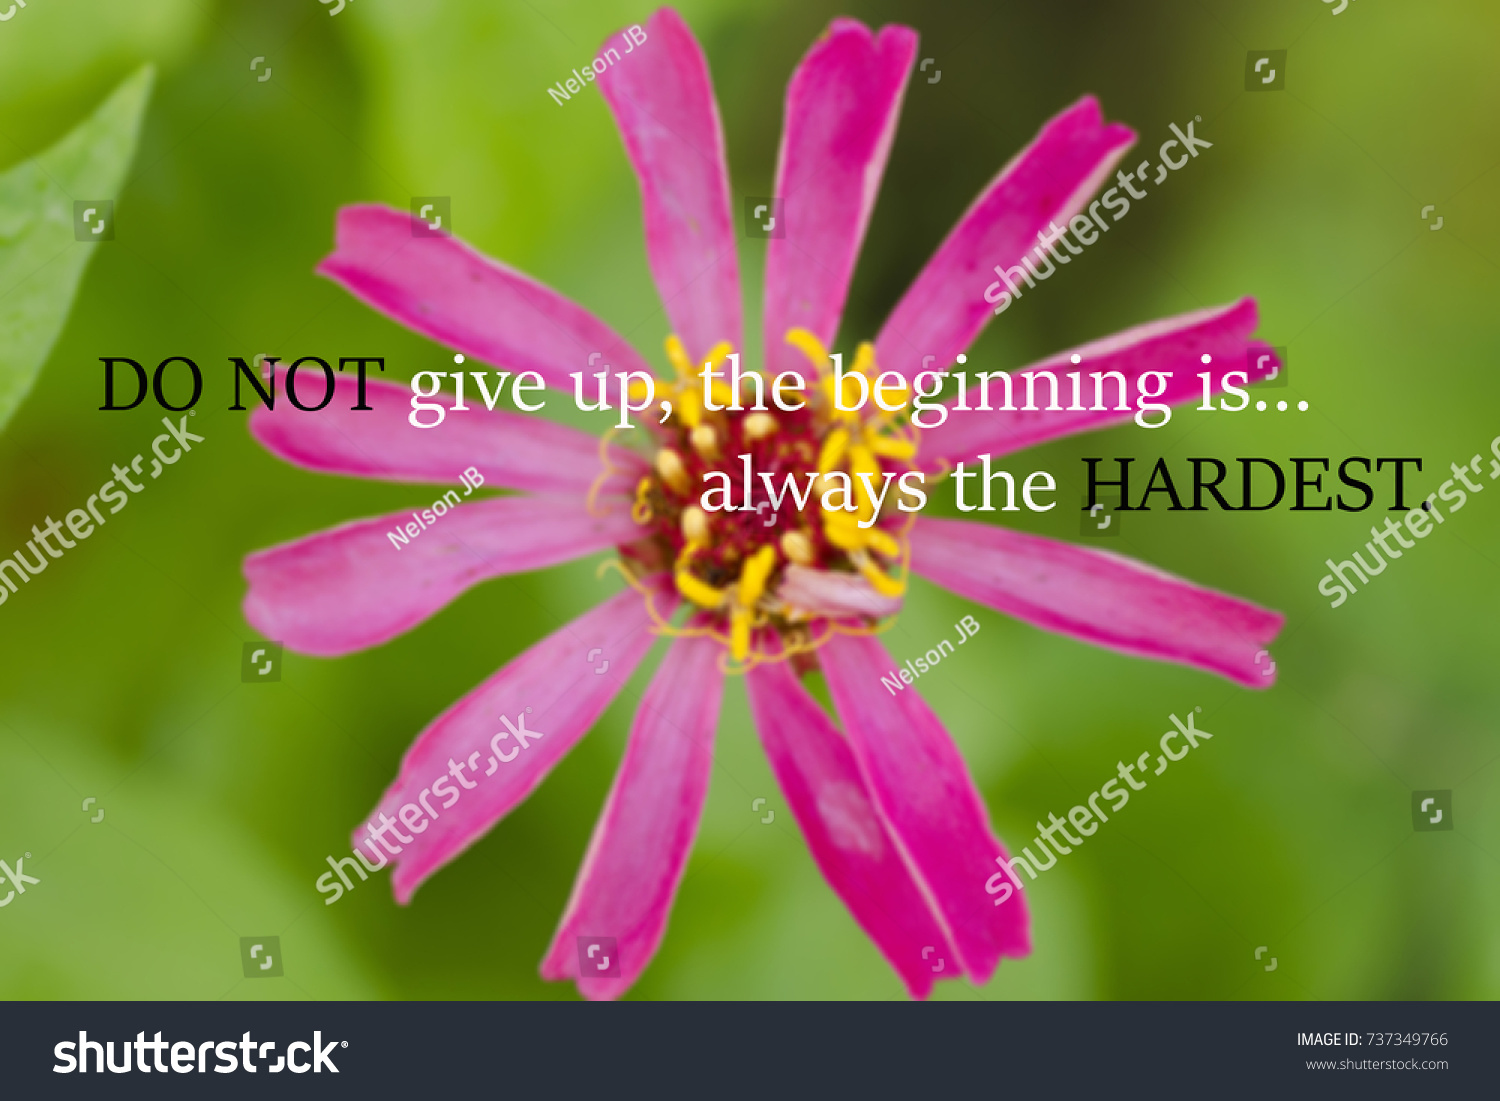 Motivational quotes do not give up stock photo edit now 737349766 motivational quotes of do not give up the beginning is always the hardest izmirmasajfo